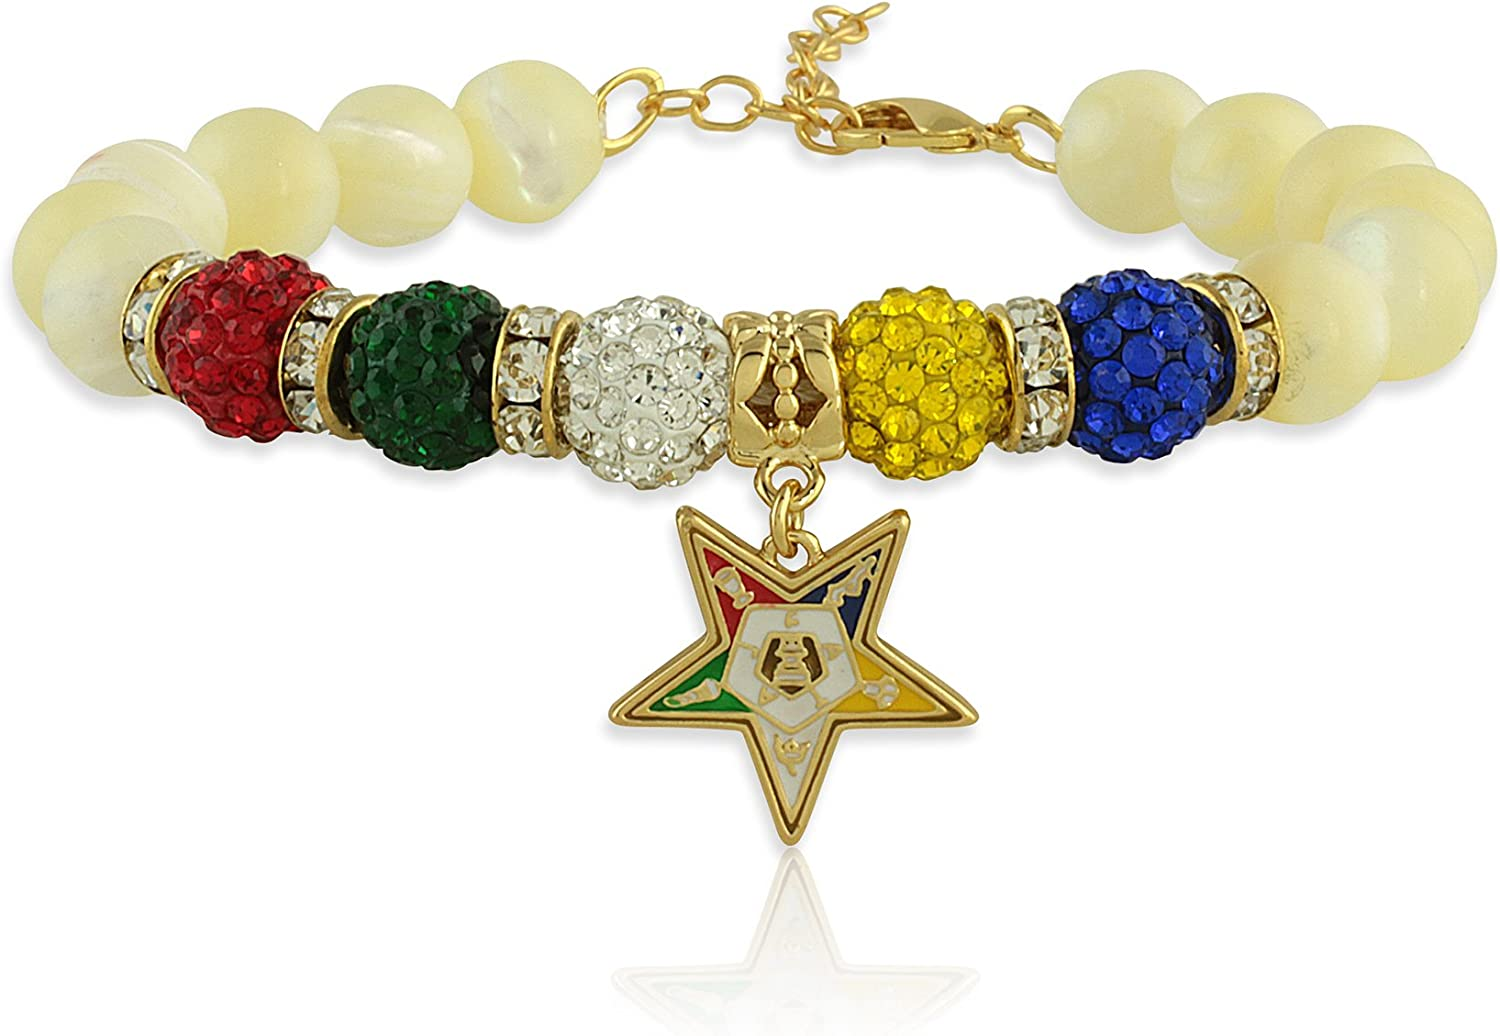 Order of The Eastern Star Mother of Pearl Gemstone Charm Bracelet with Gold Tone Extender Chain and Lobster Claw Clasp (Fits Wrists 7 to 9.5 inches)